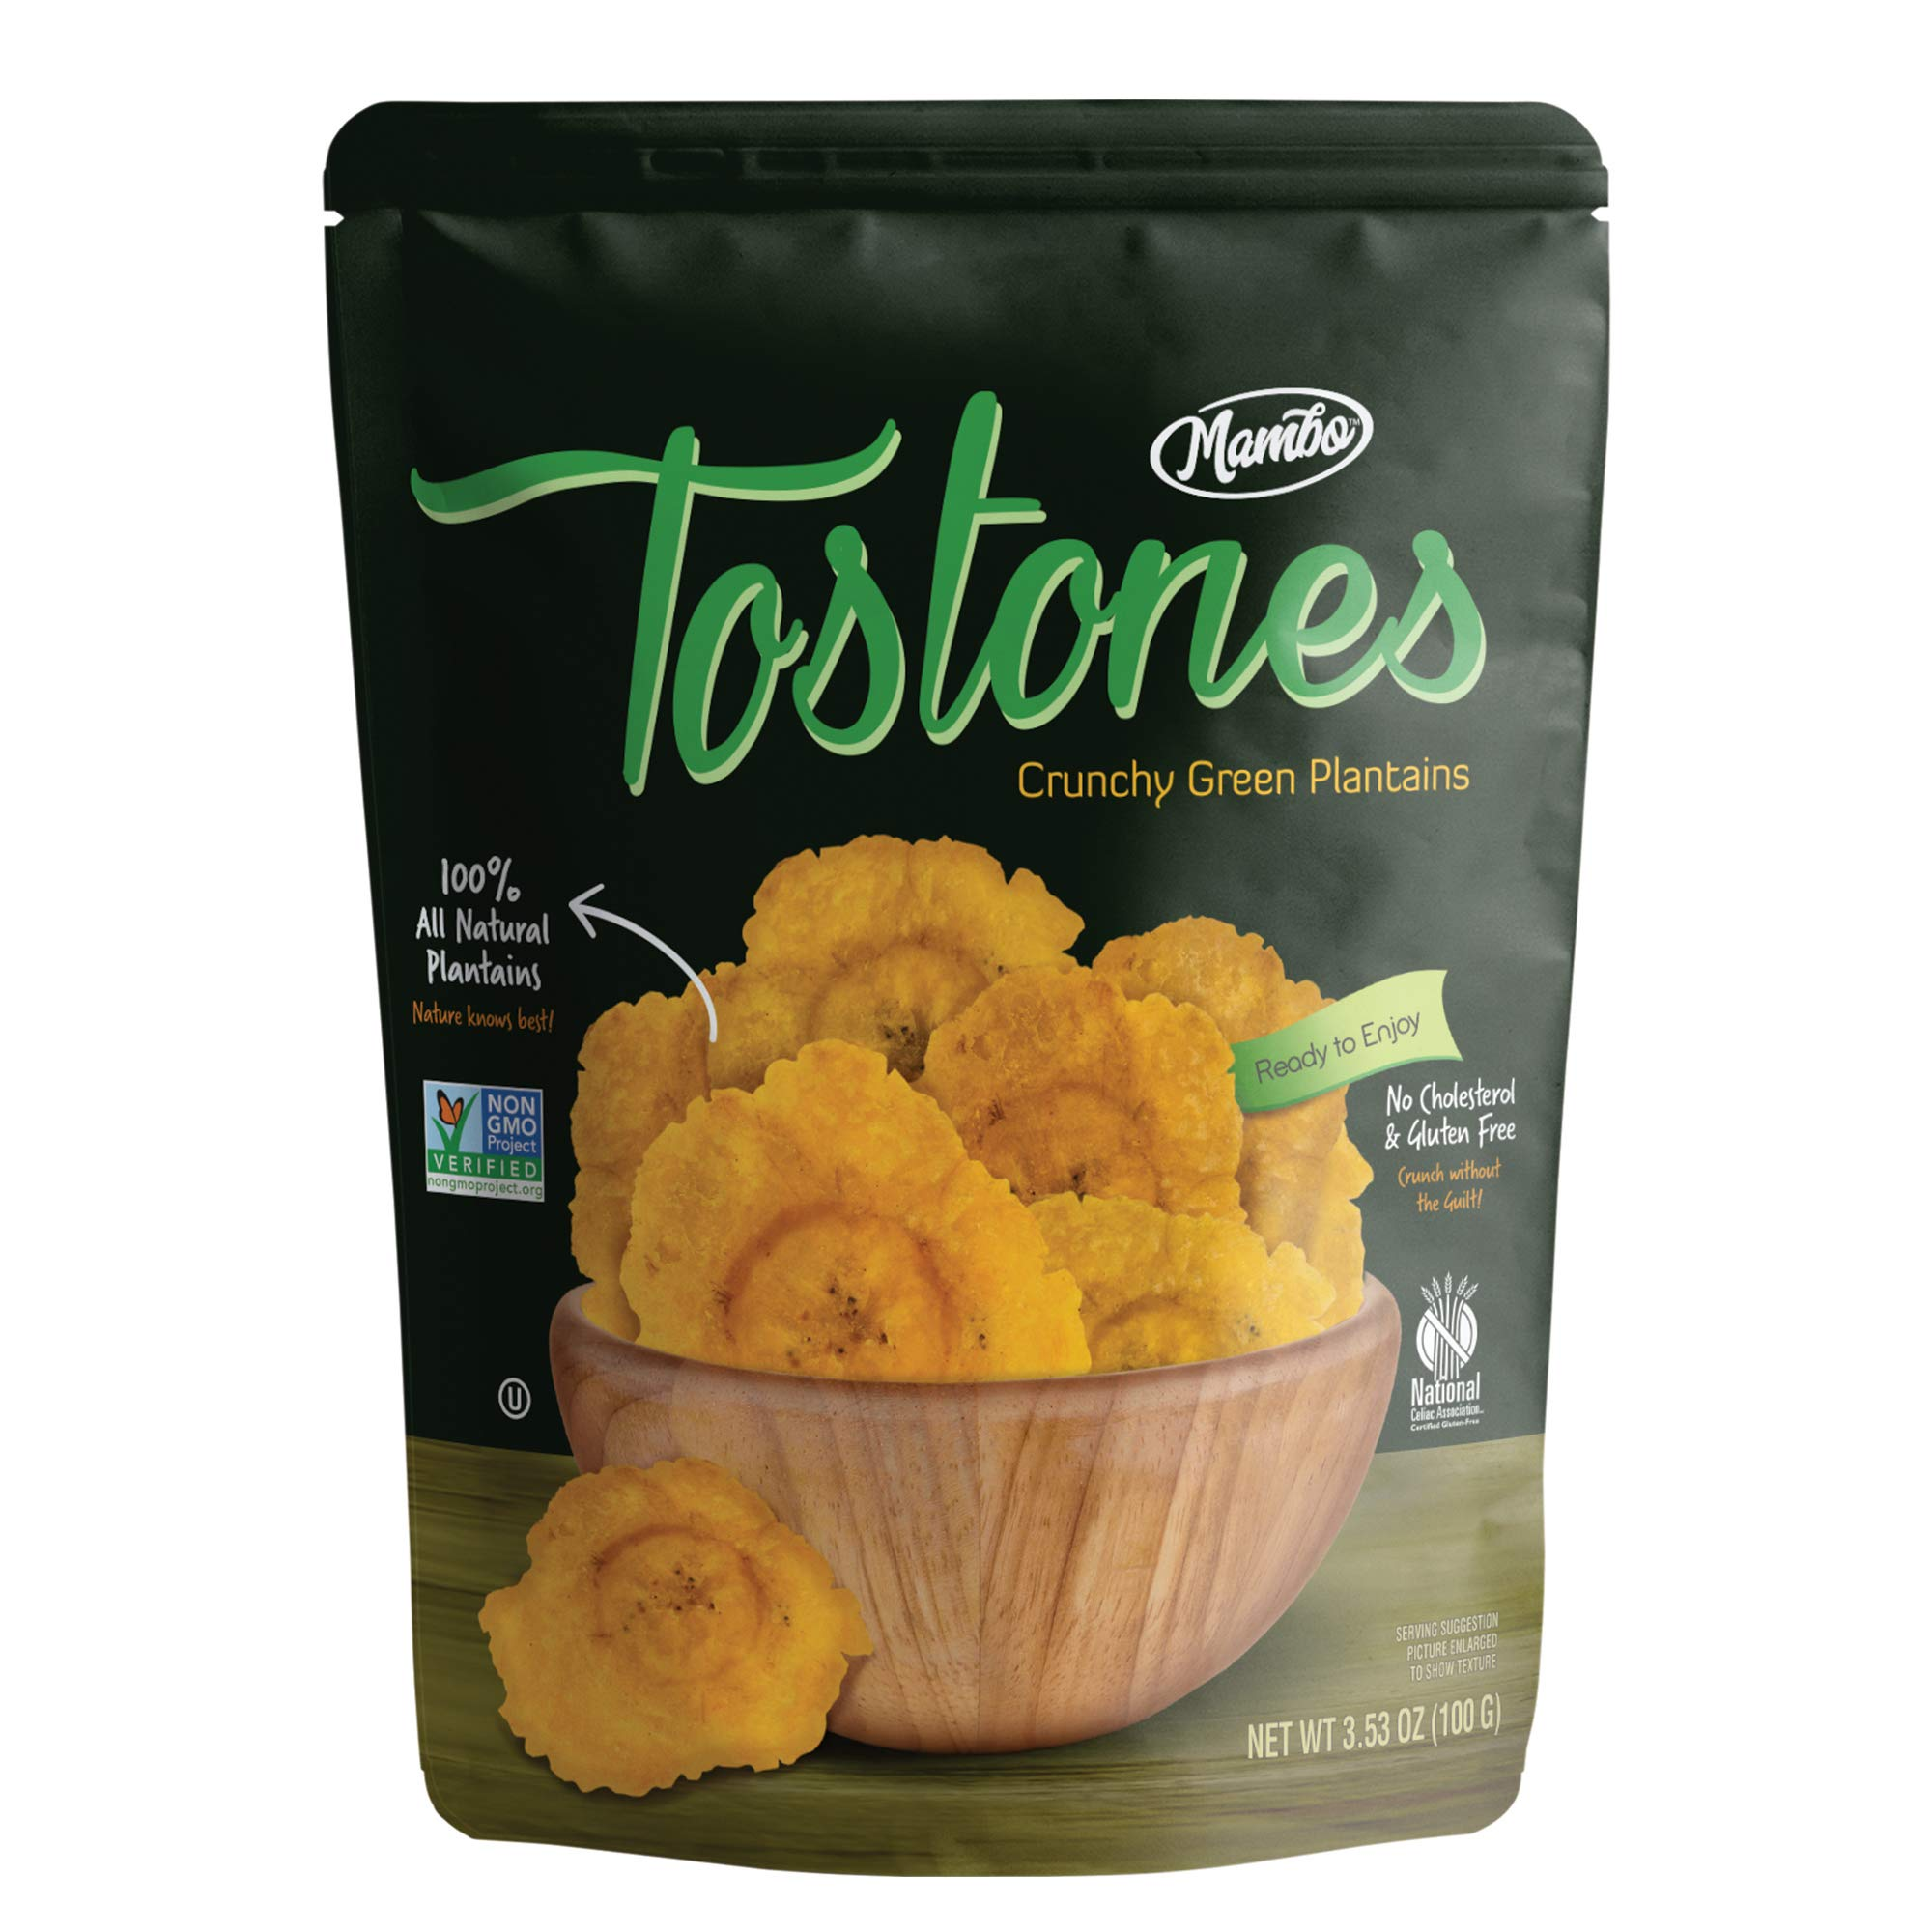 Mambo Tostones, All-Natural Green Plantains Tostones, 3.53 oz unit, 12 bags per box, Plantain Chips, Tostones Chips, Gluten-Free, Only Three Ingredients Tostones